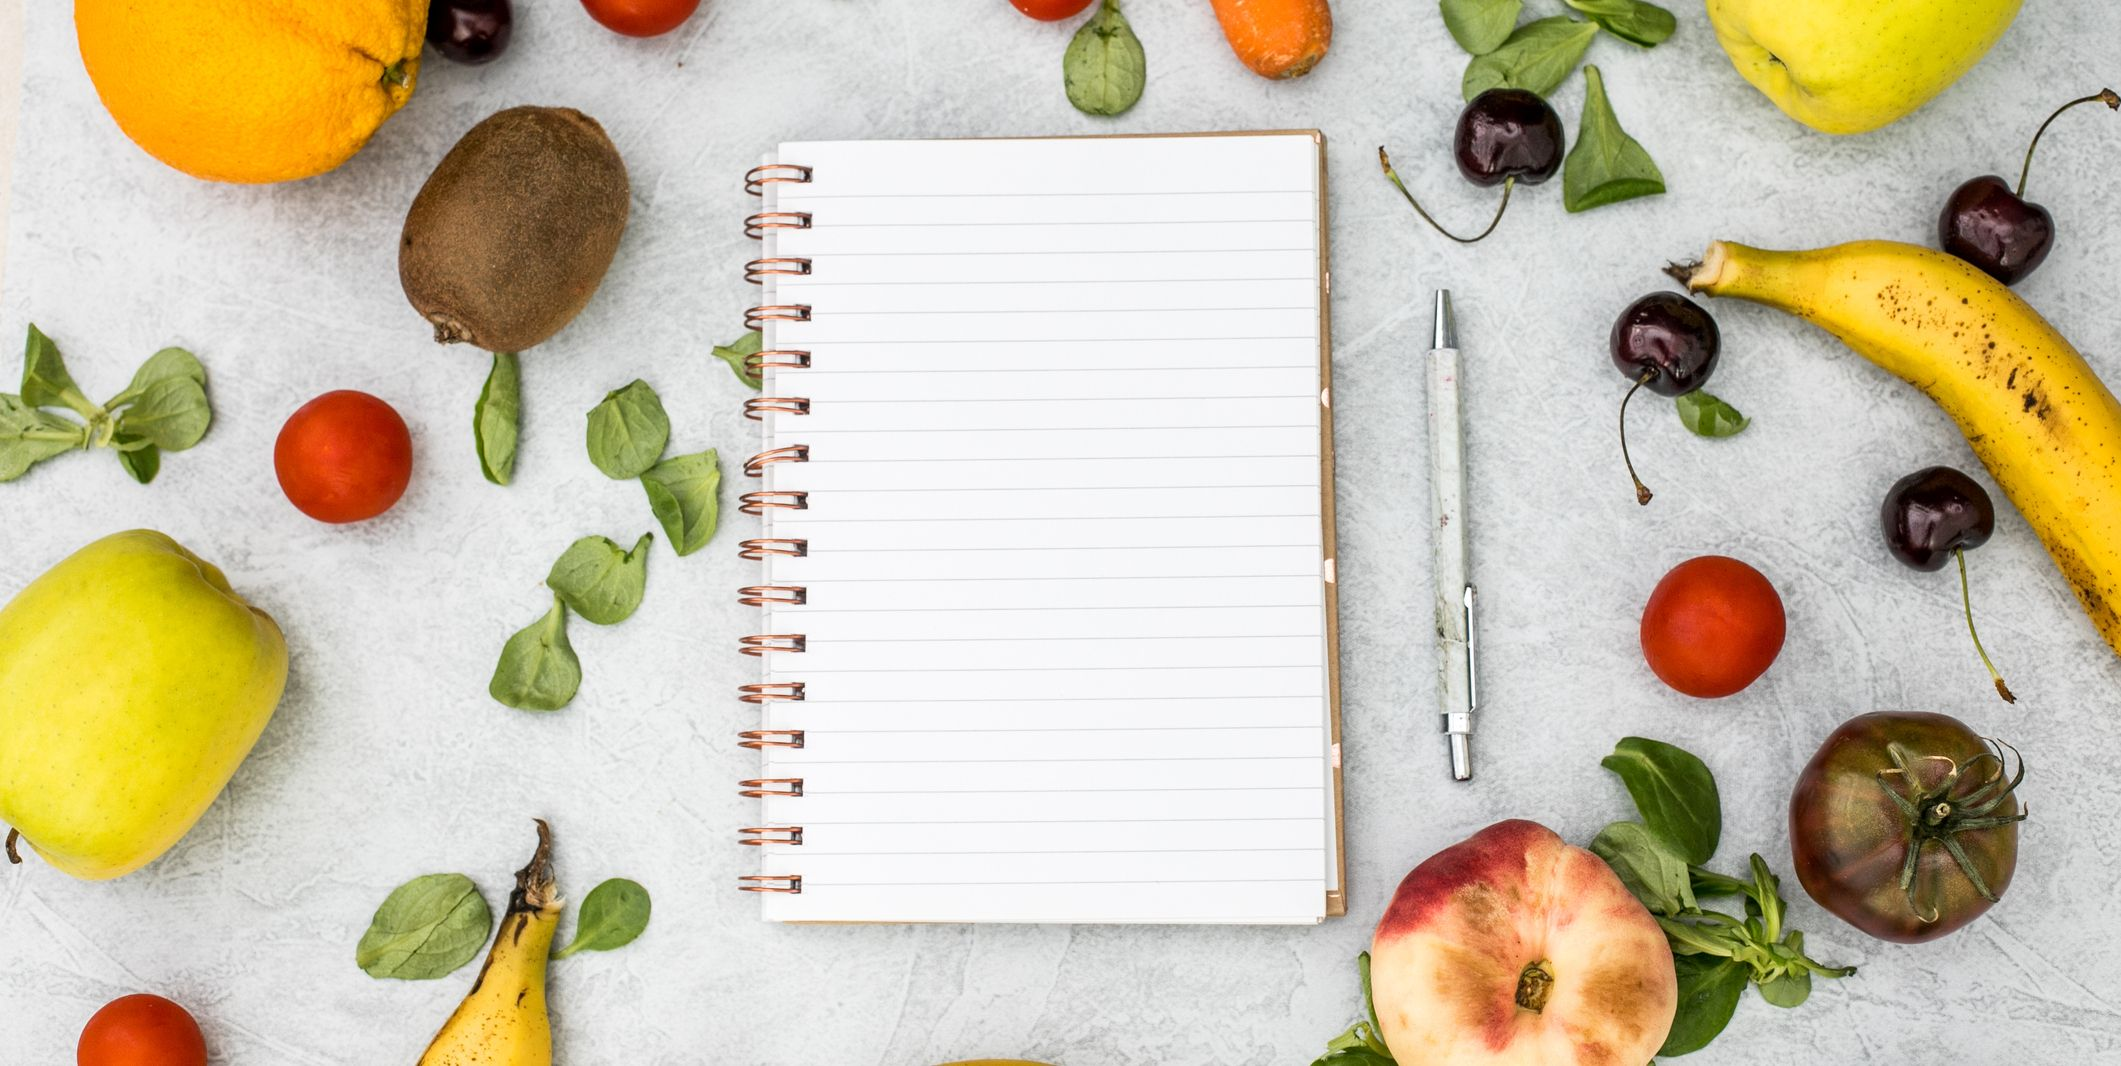 shopping list with vegetables and fruit notebook